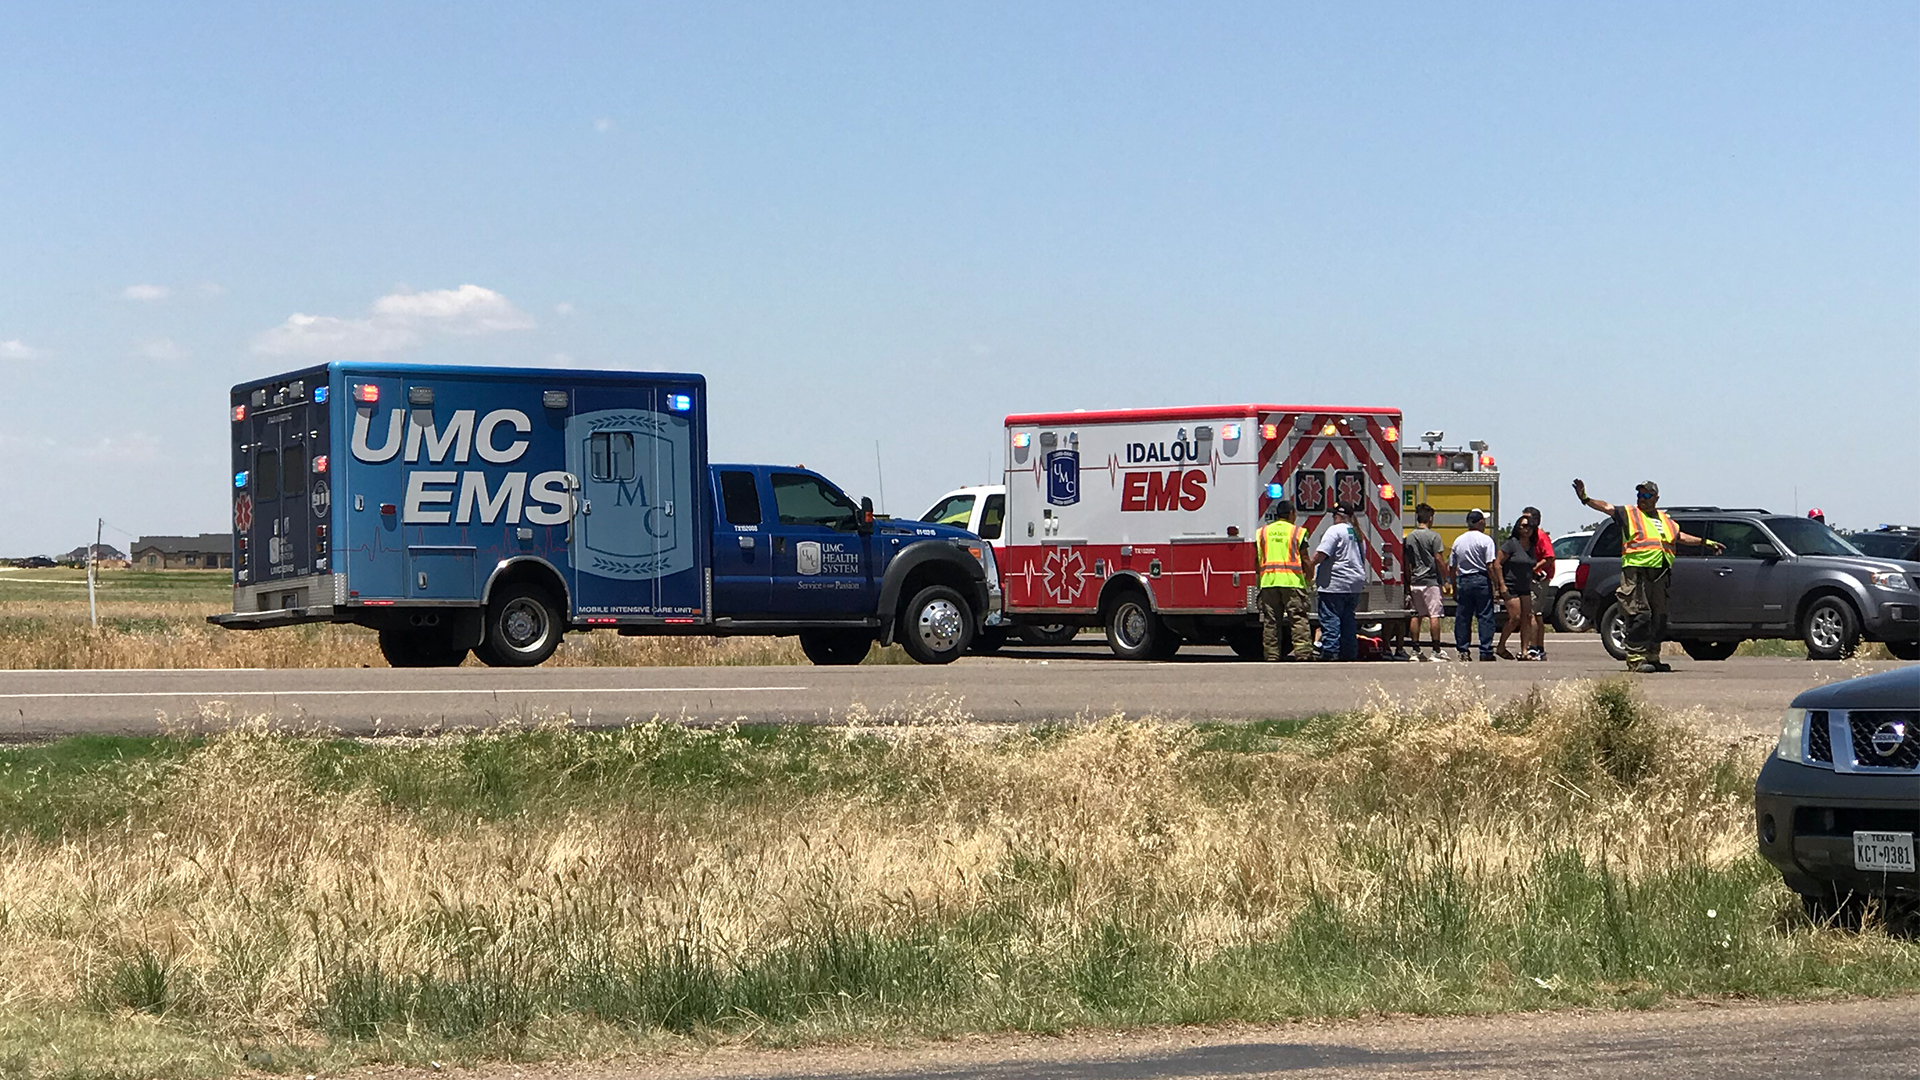 Moderate injuries reported following 2-vehicle crash in Idalou